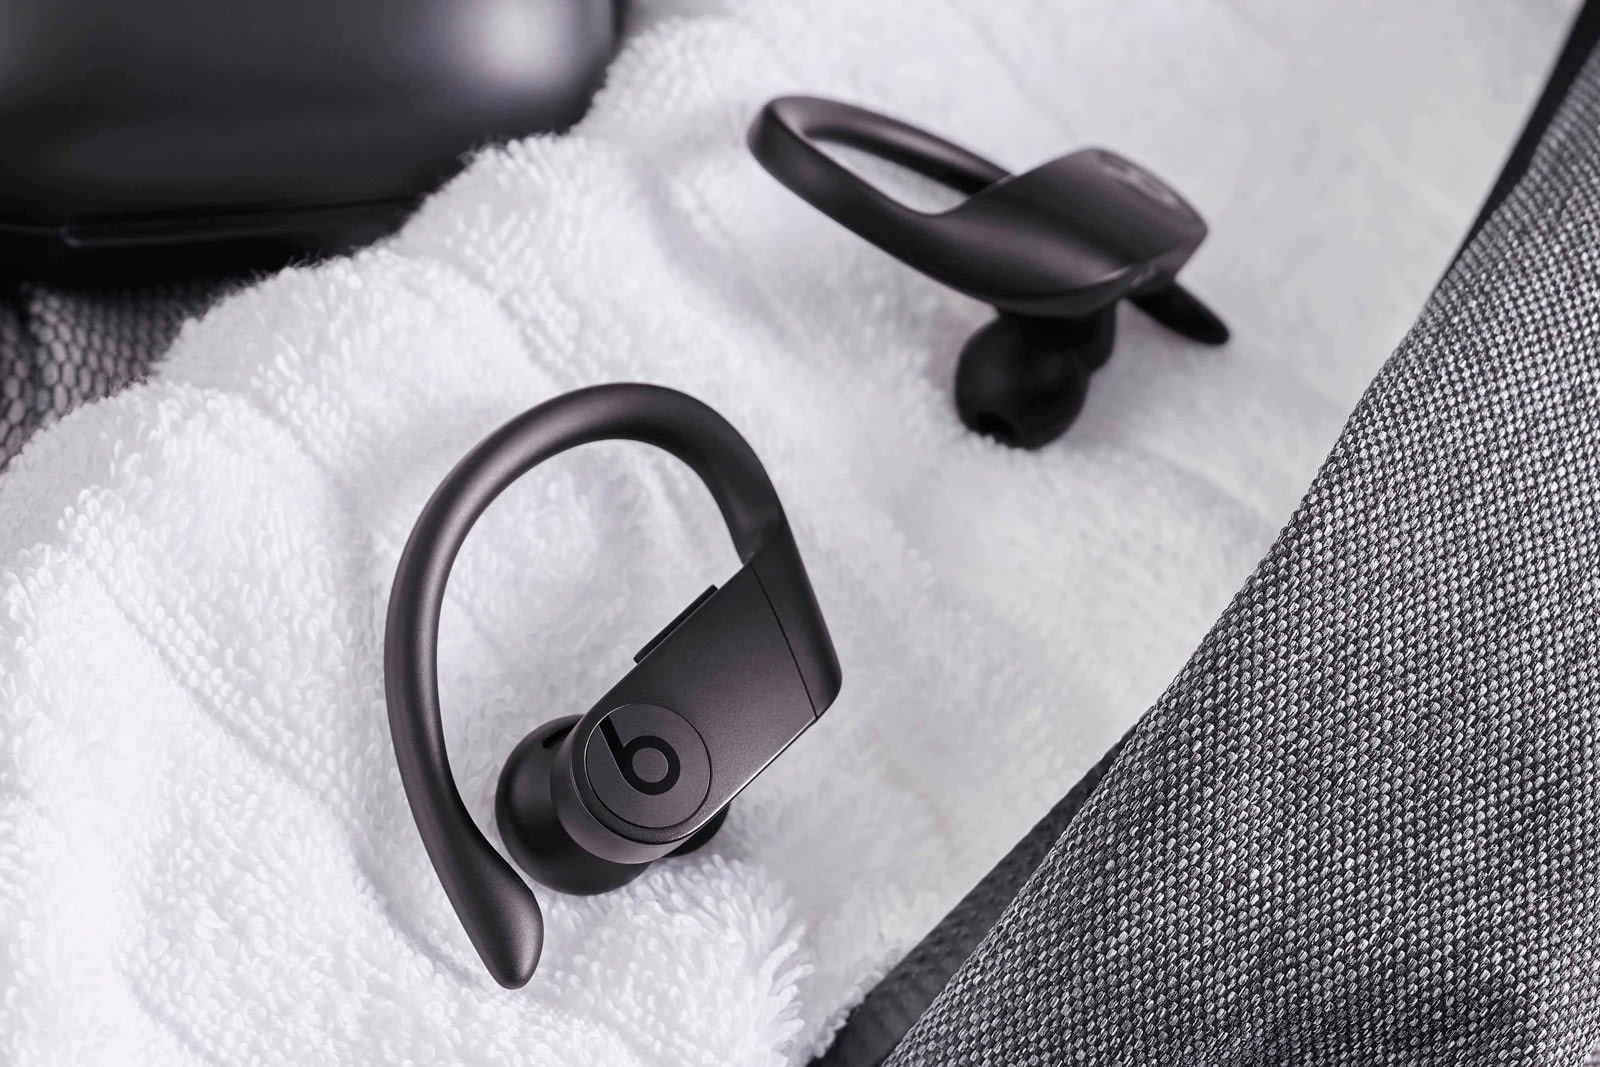 eebbabe614c Beats' all-wireless Powerbeats Pro earbuds are available May 10th